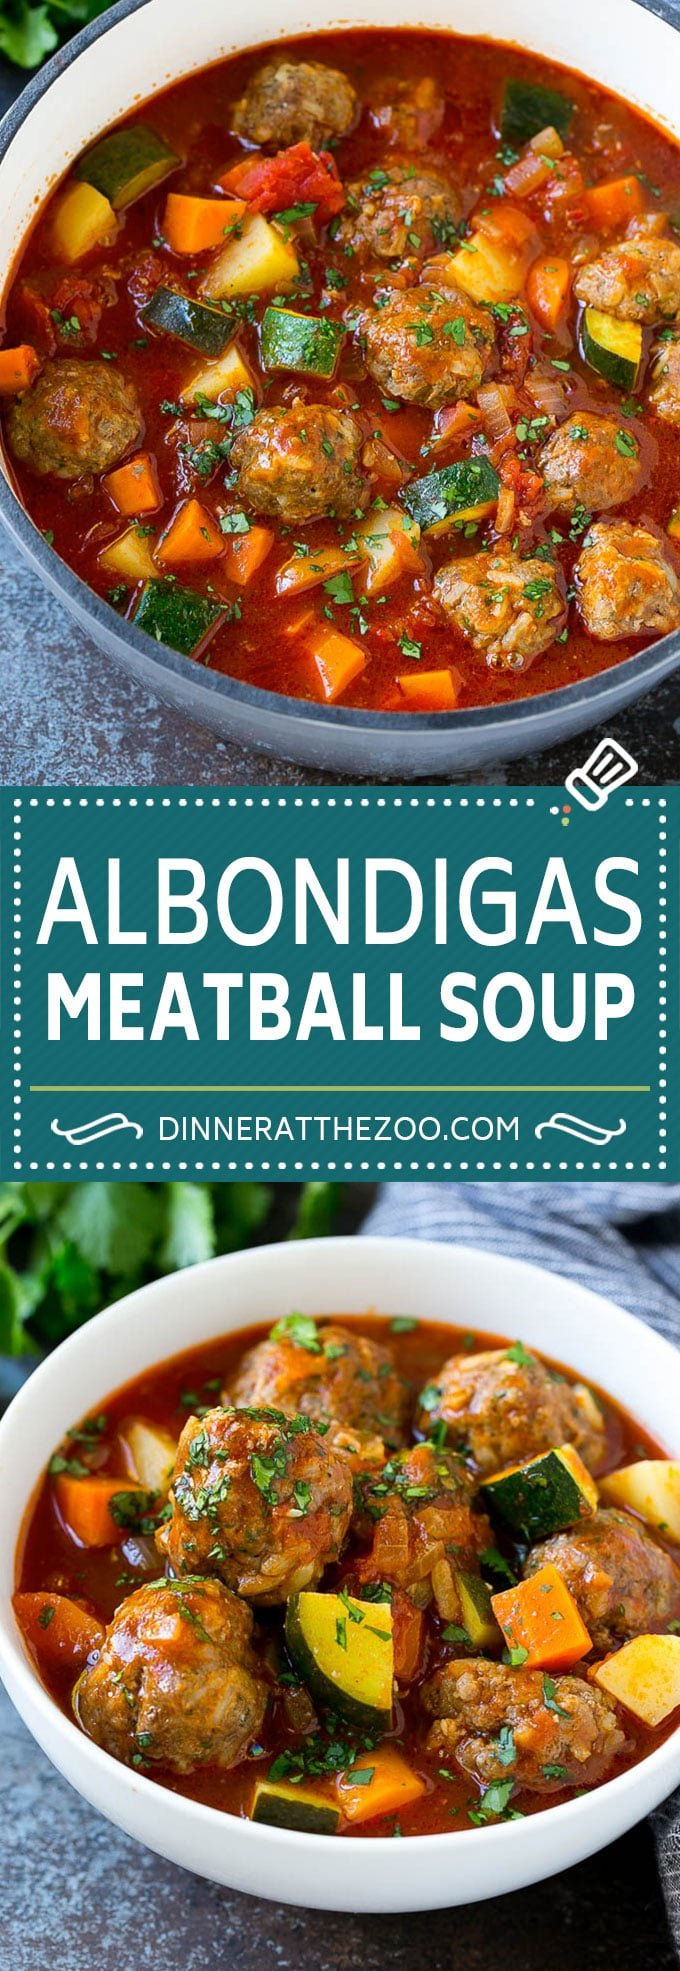 Albondigas Soup | Meatball Soup | Mexican Soup #soup #meatballs #beef #rice #glutenfree #dinner #dinneratthezoo #comfortfood